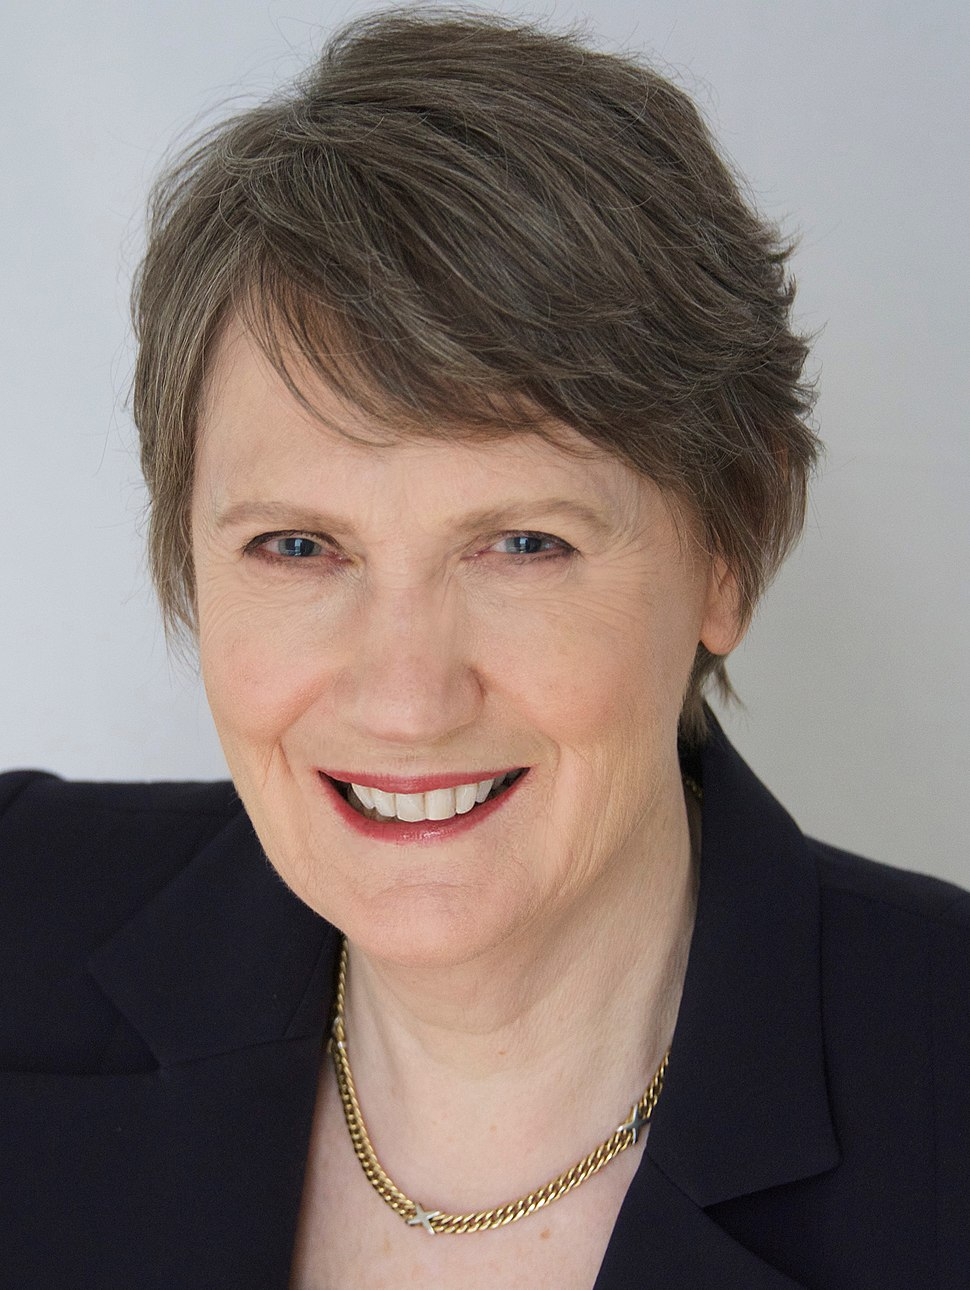 Helen Clark official photo (cropped)